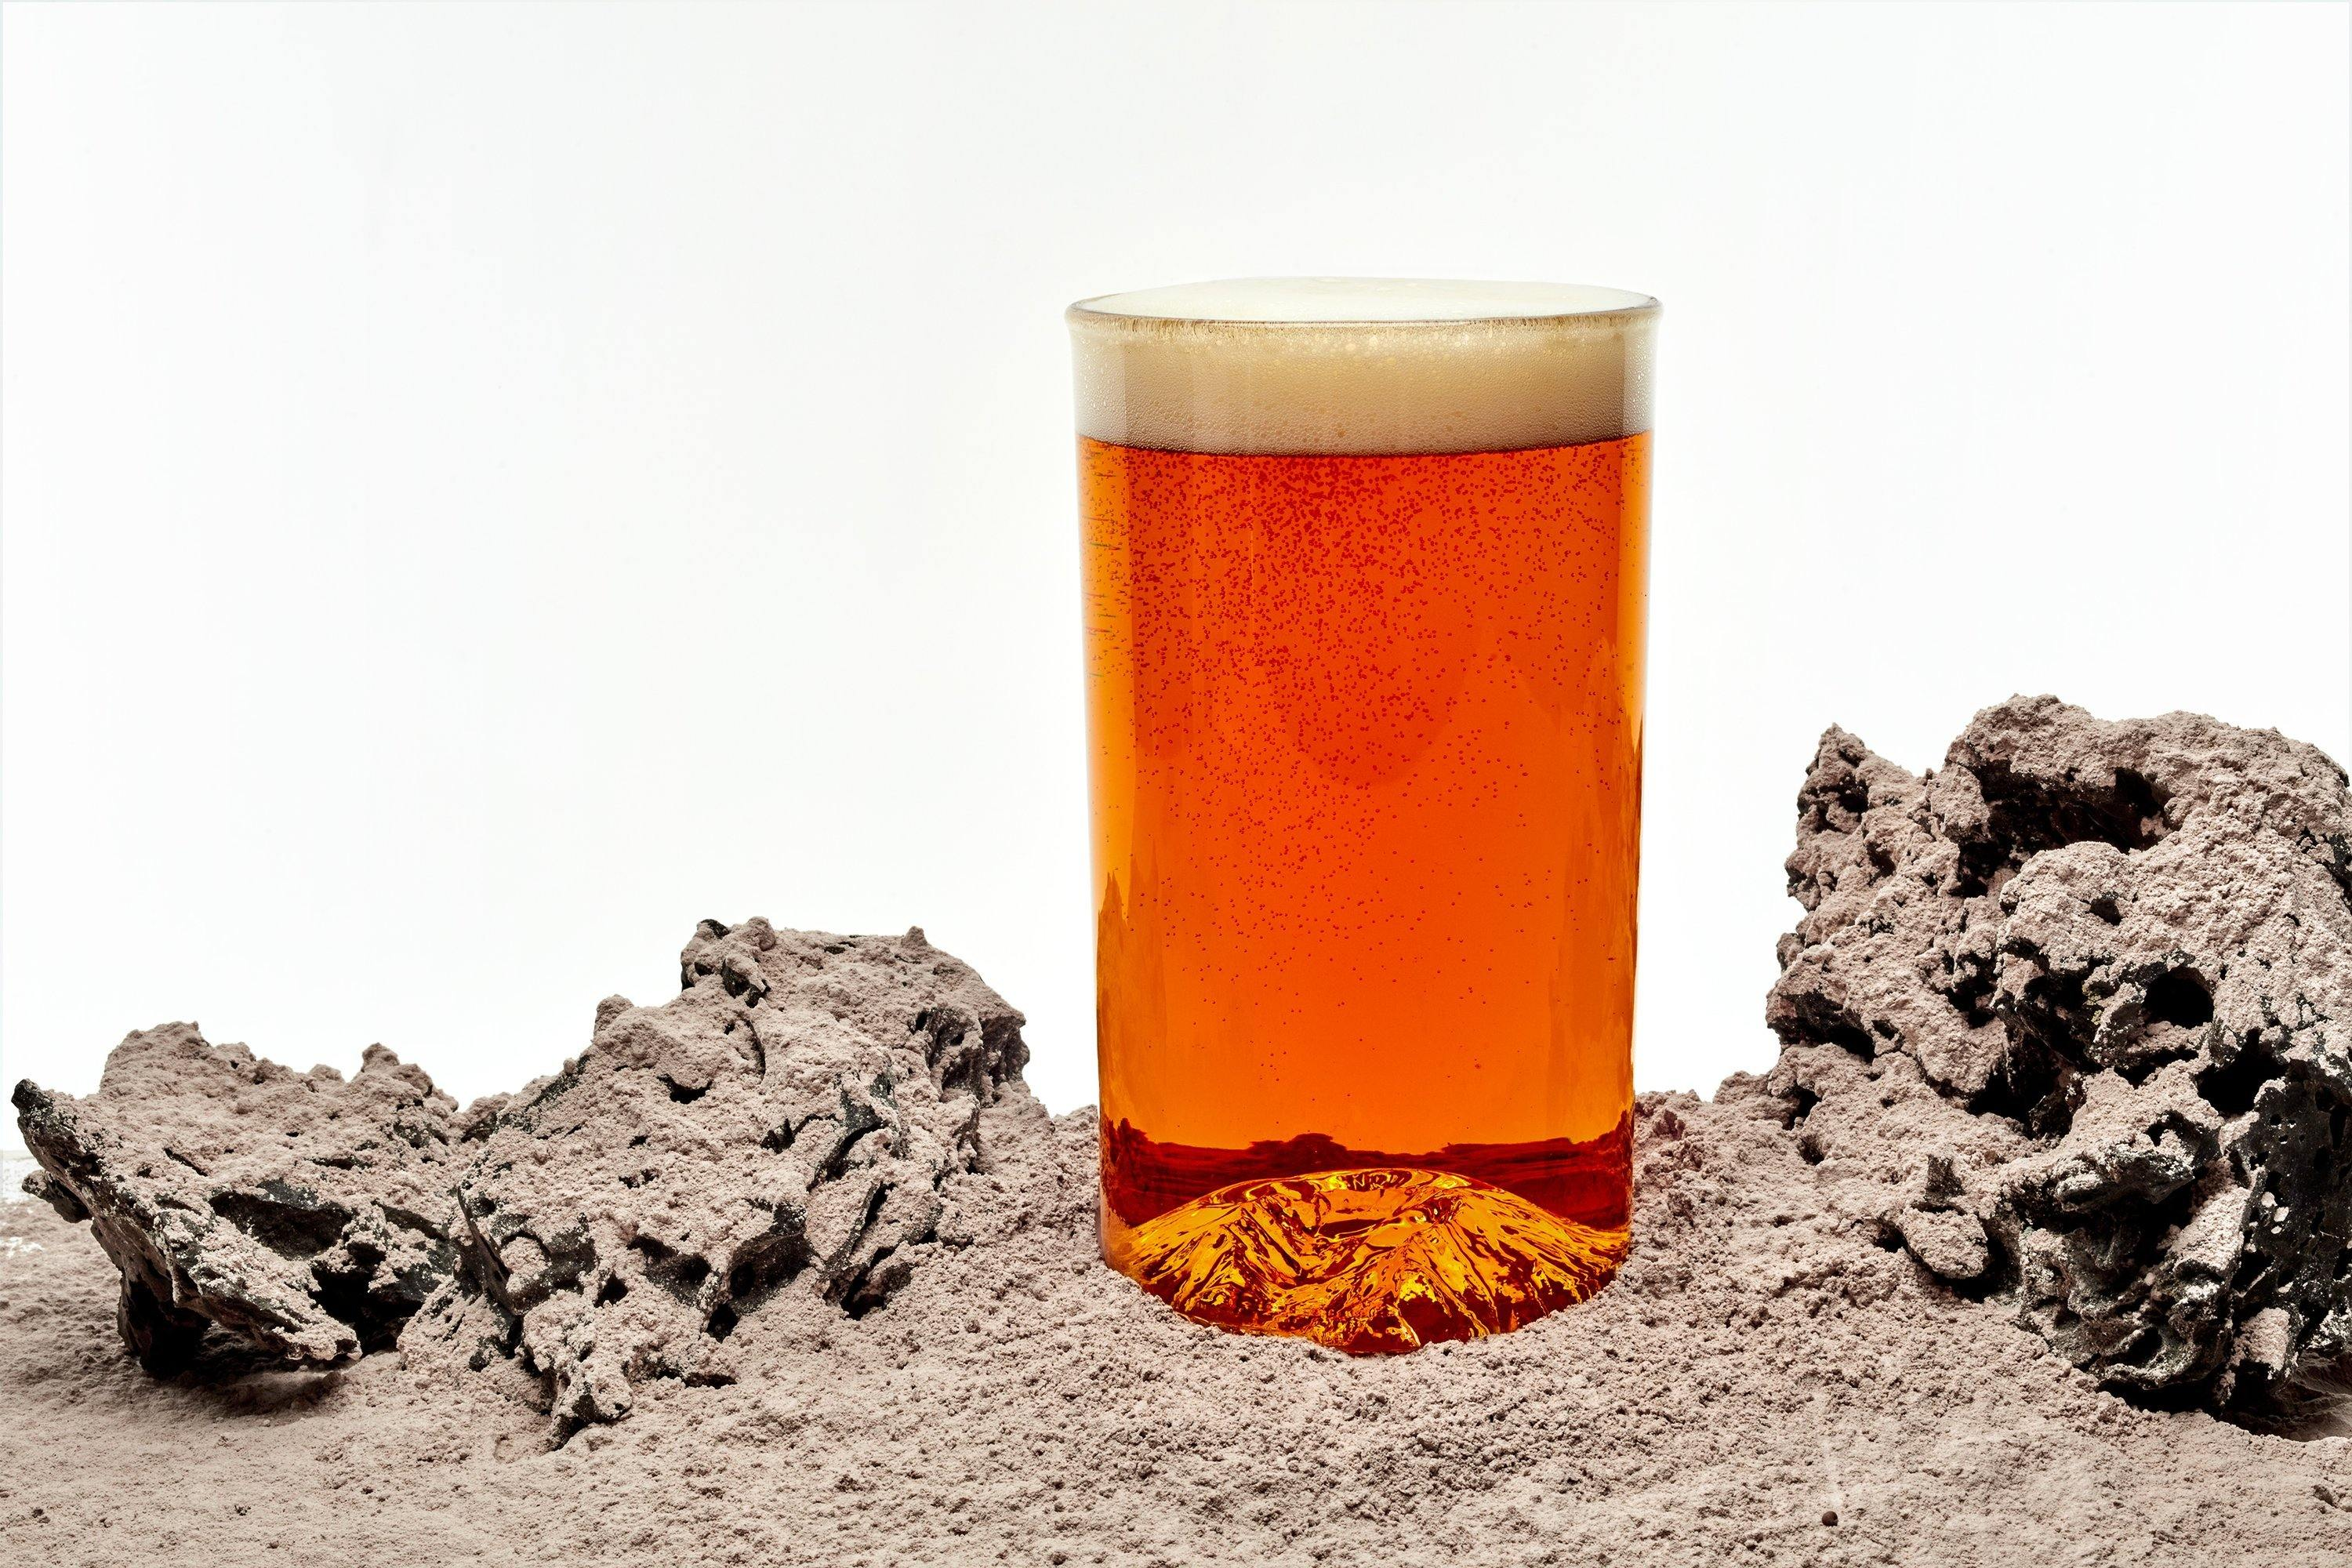 The Mt. St. Helens Pint